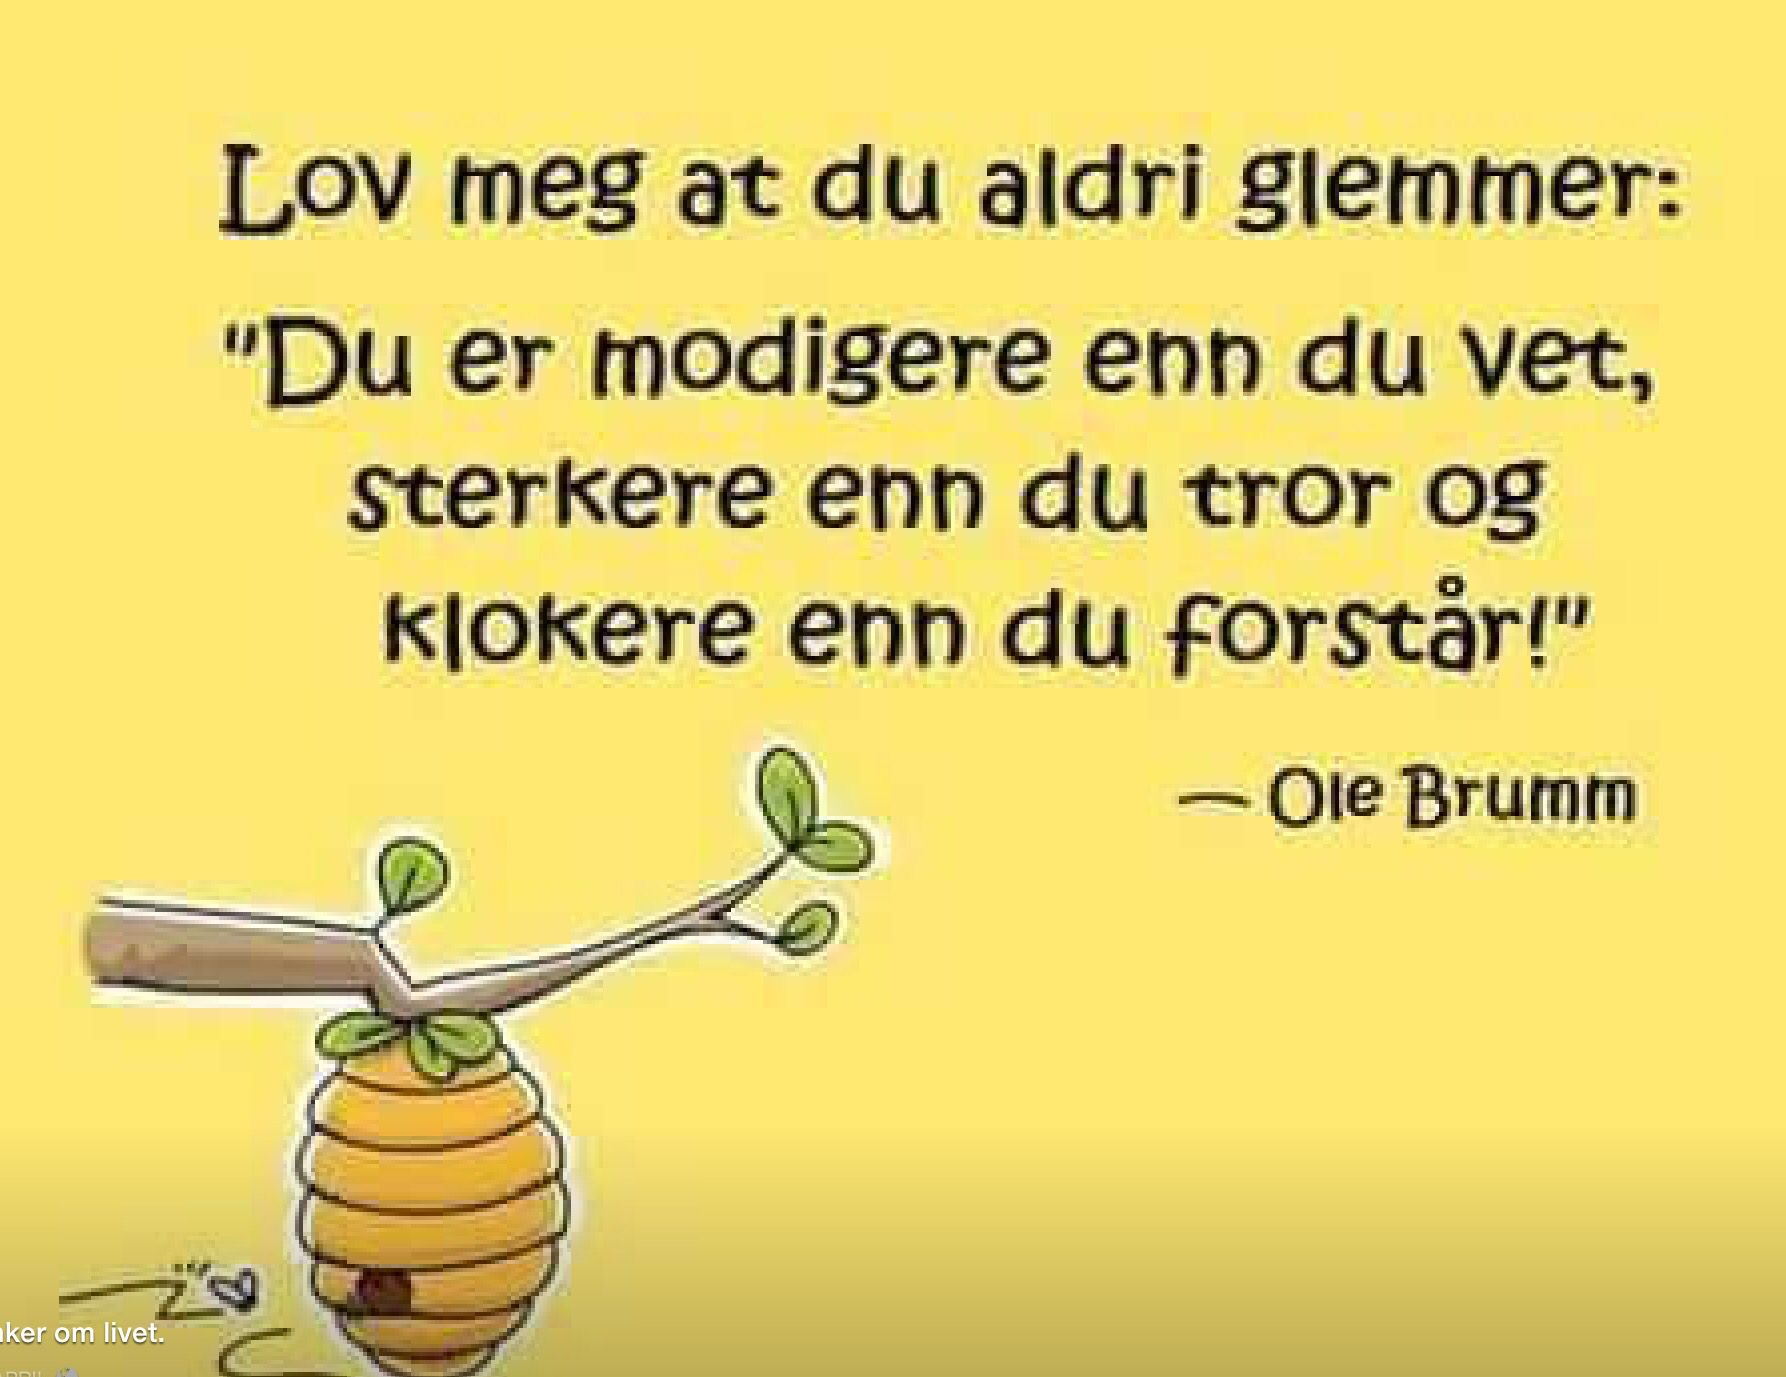 ole brumm sitater Ole Brumm | Ordtak Og sitater | Quotes, Sayings, Words ole brumm sitater